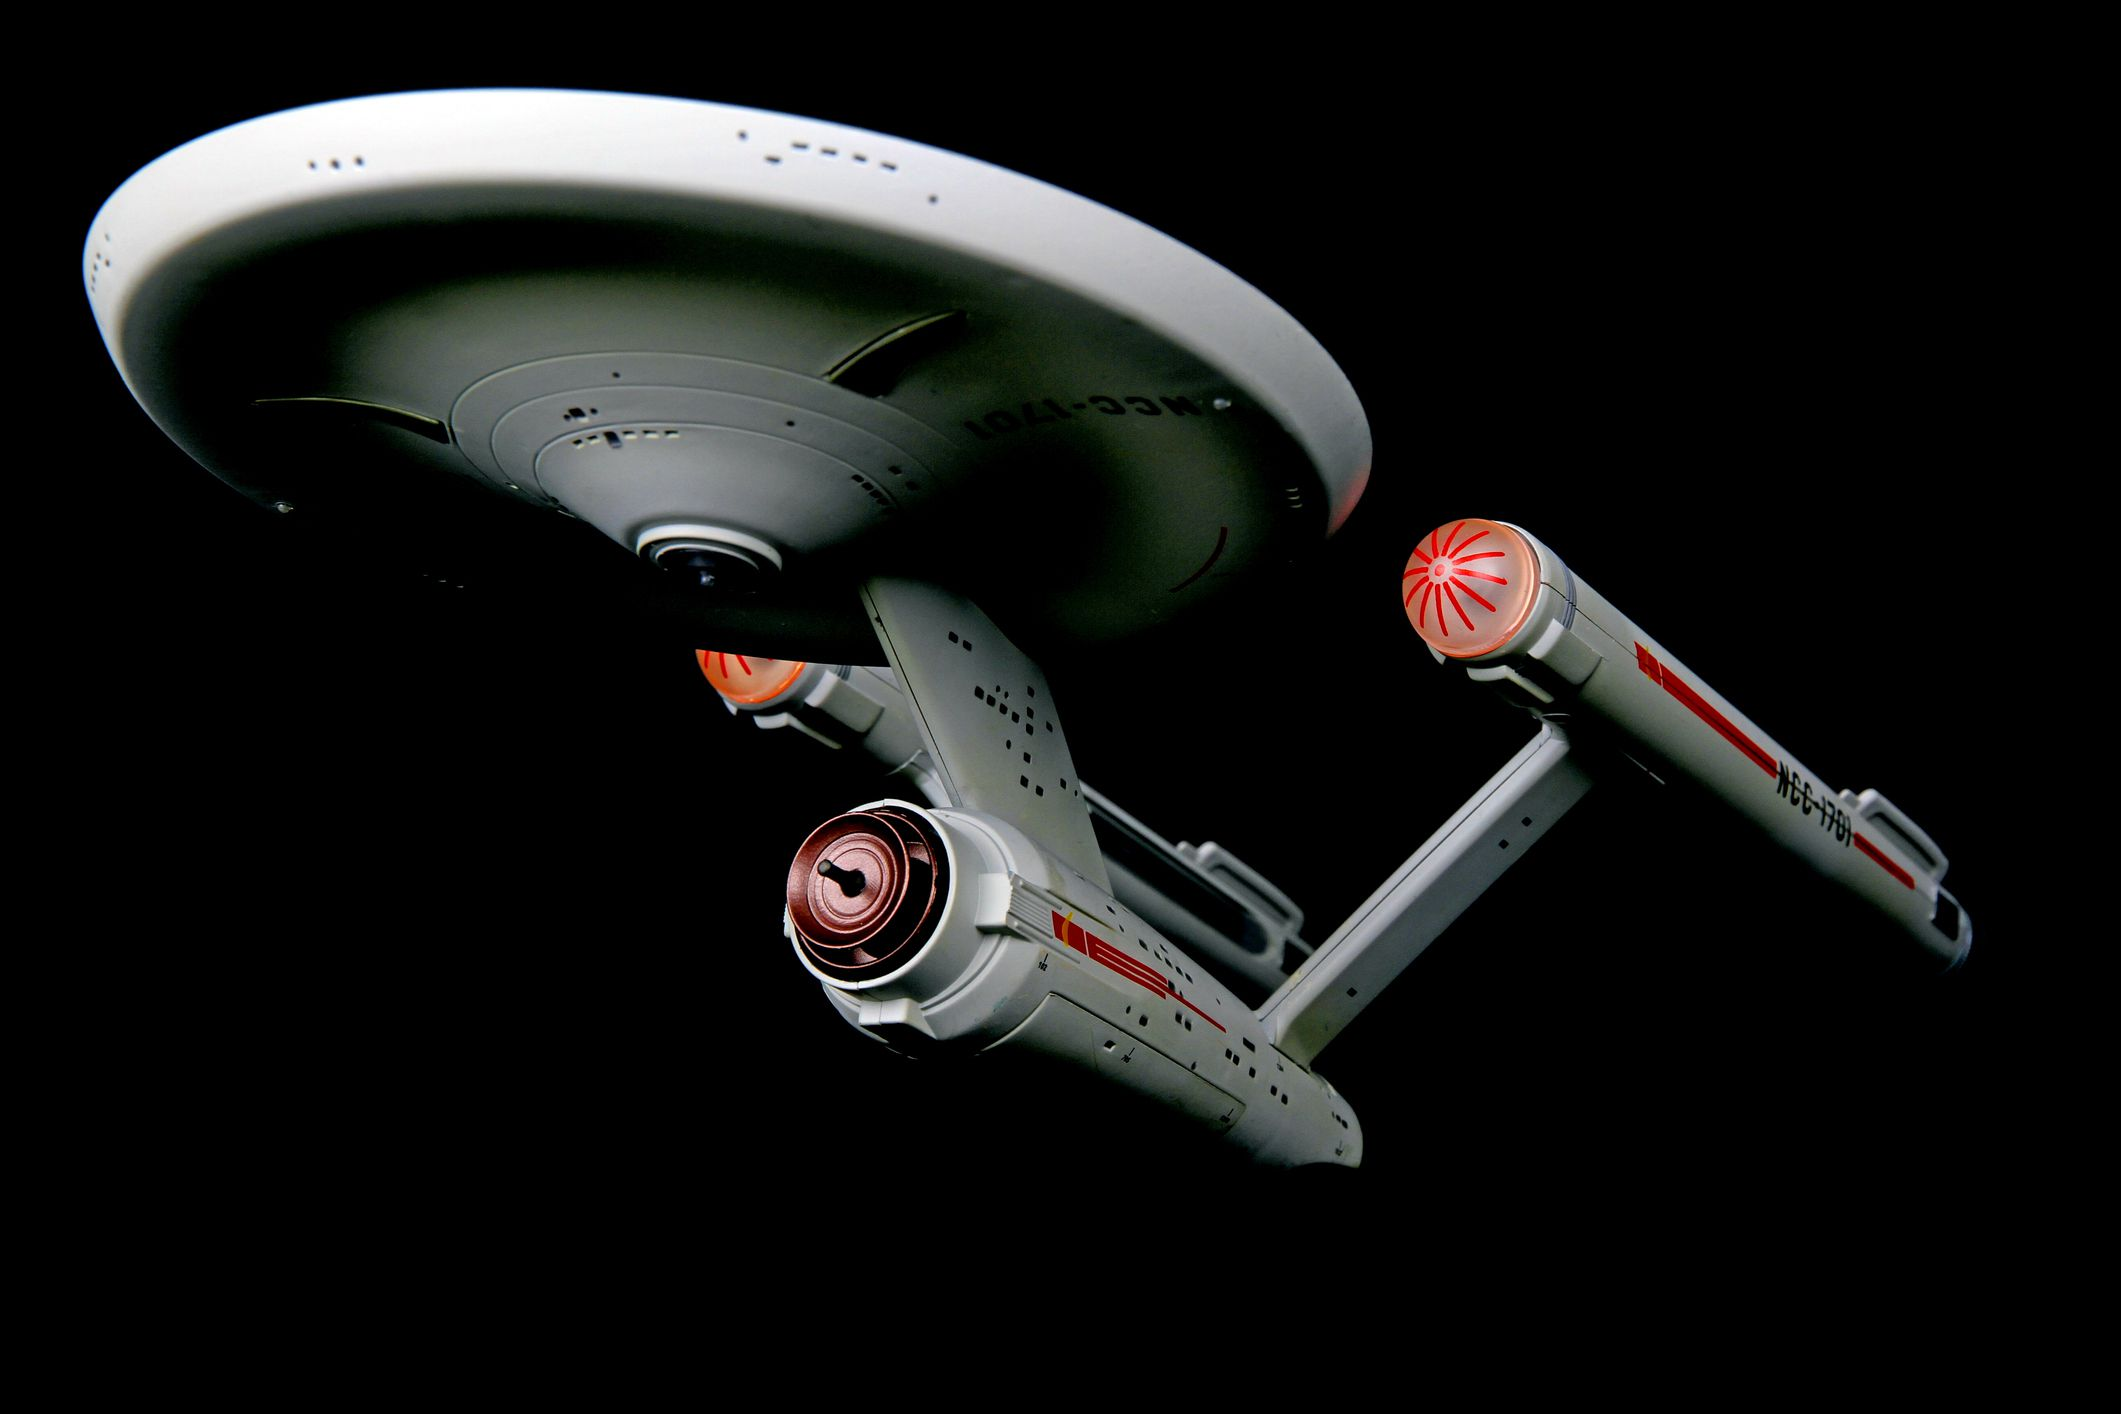 How To Watch The Star Trek Movies In Order